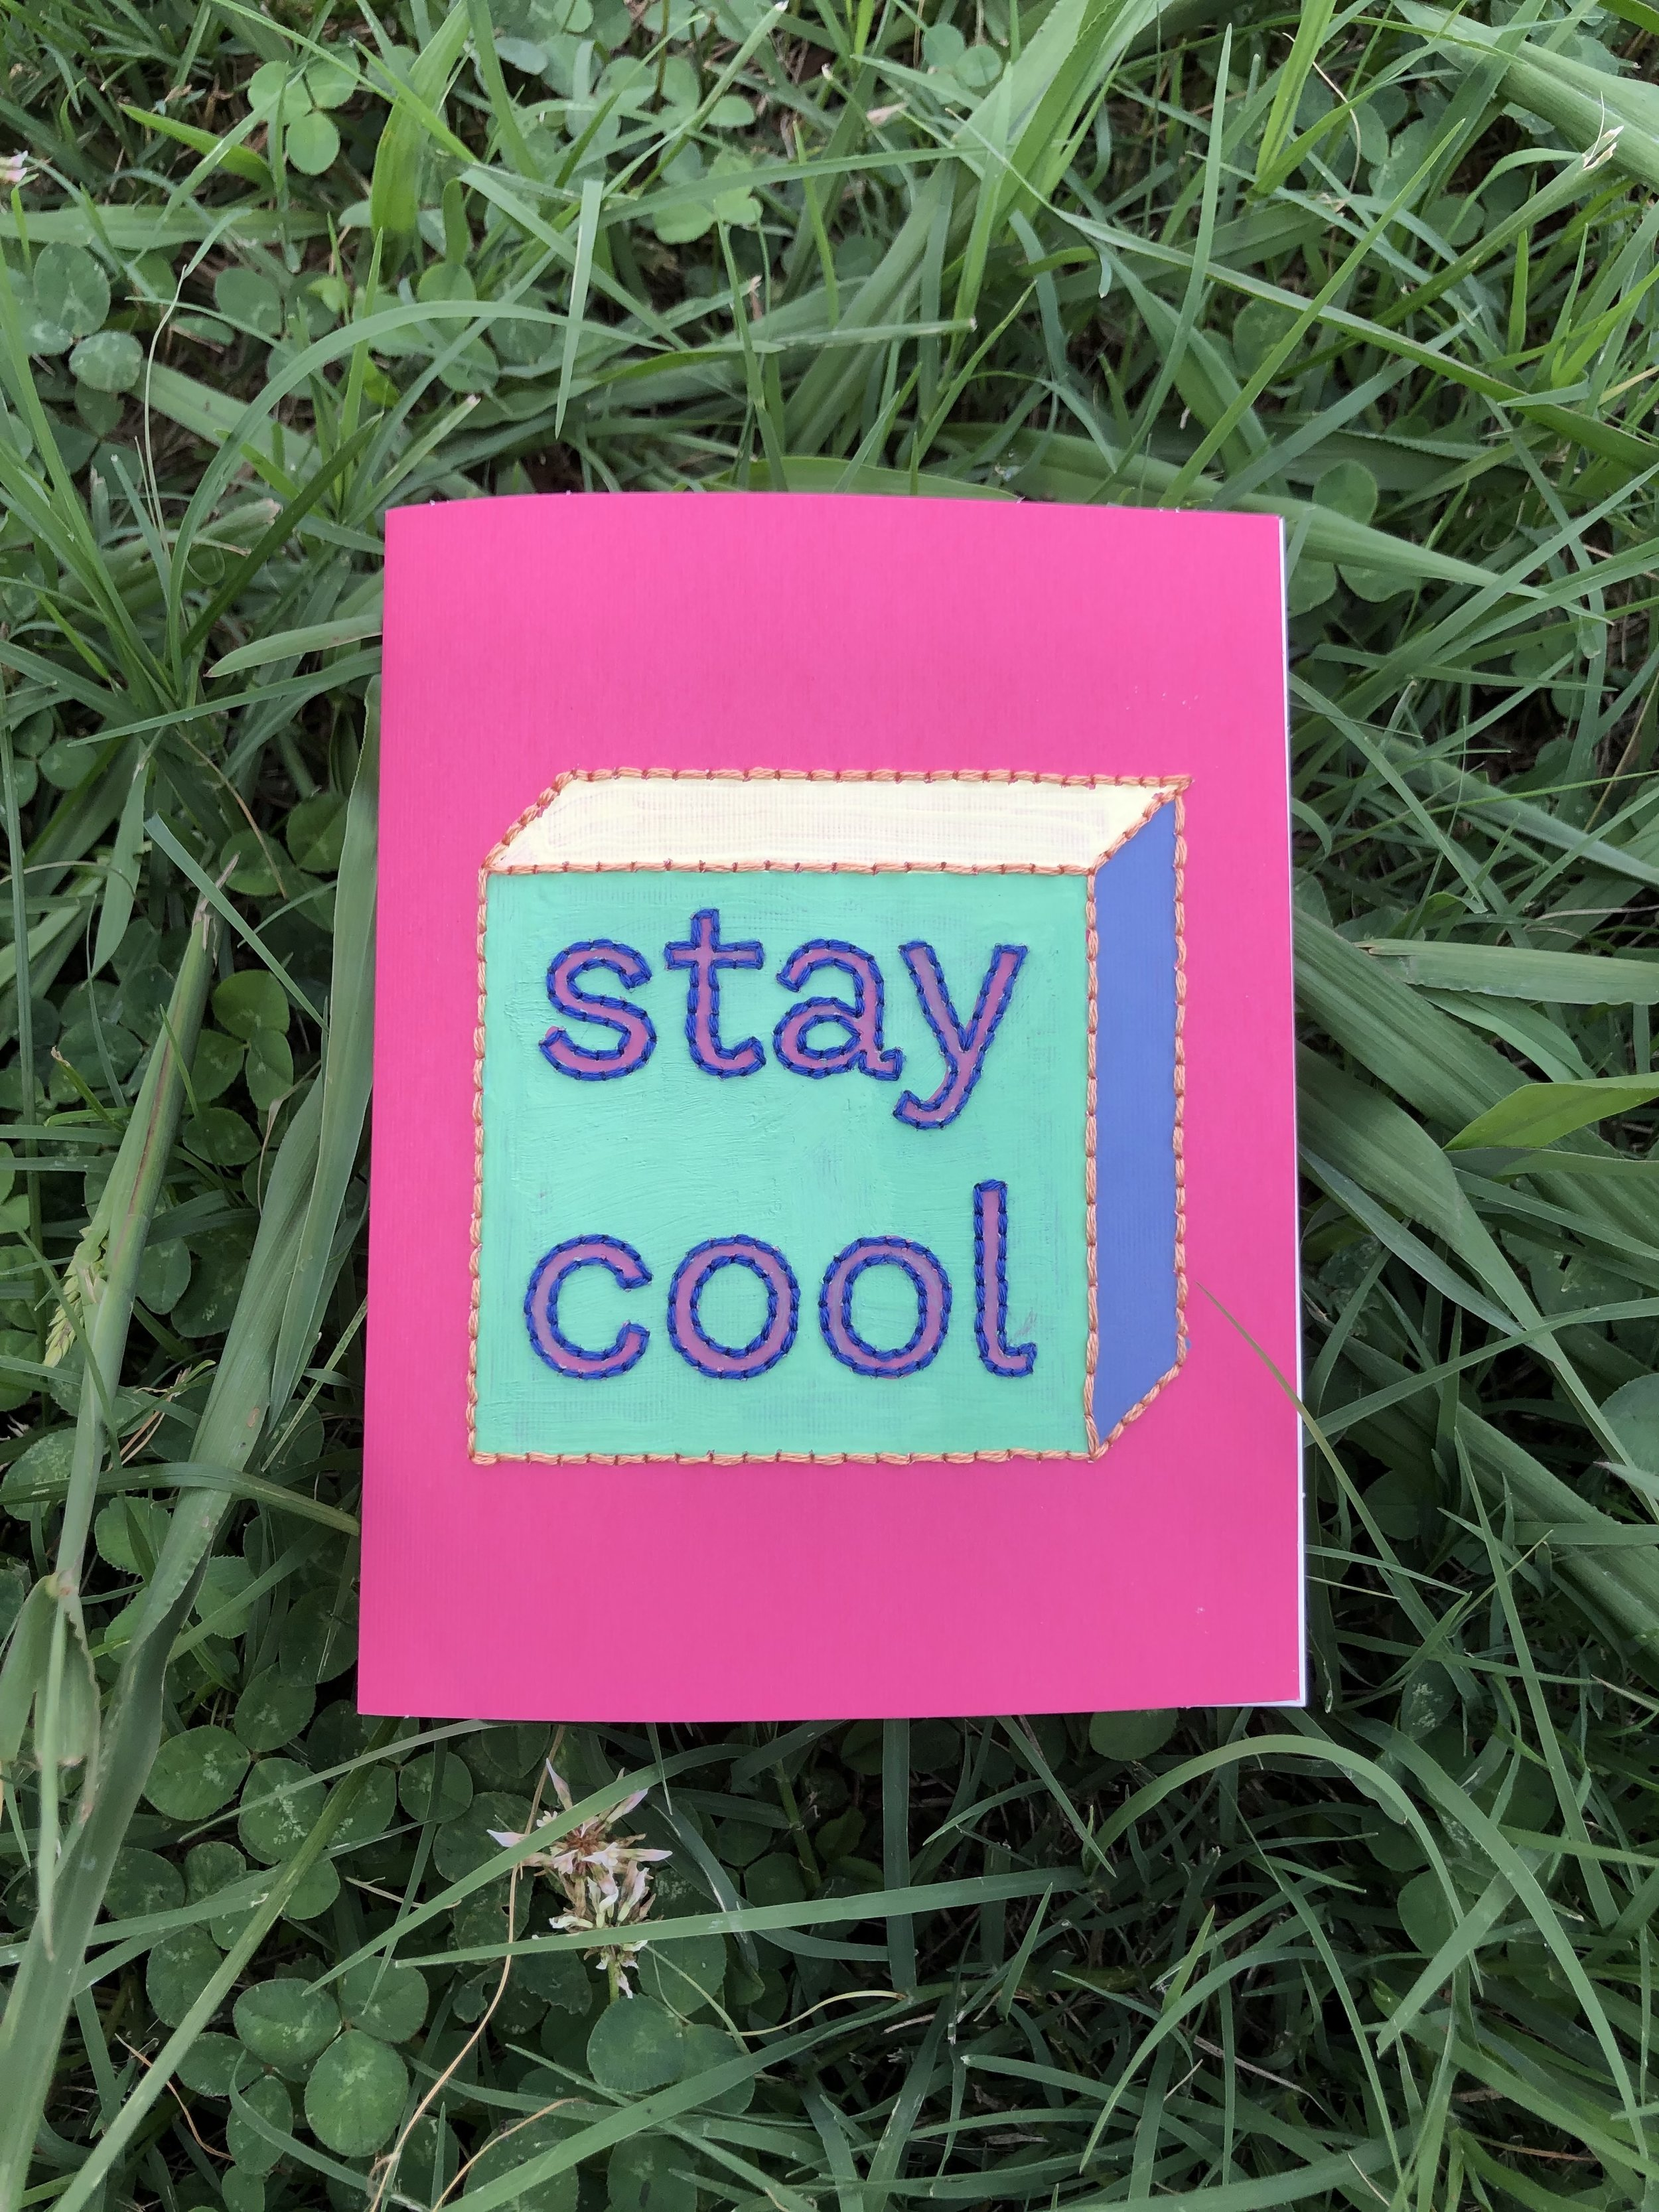 stay cool 001, 2019